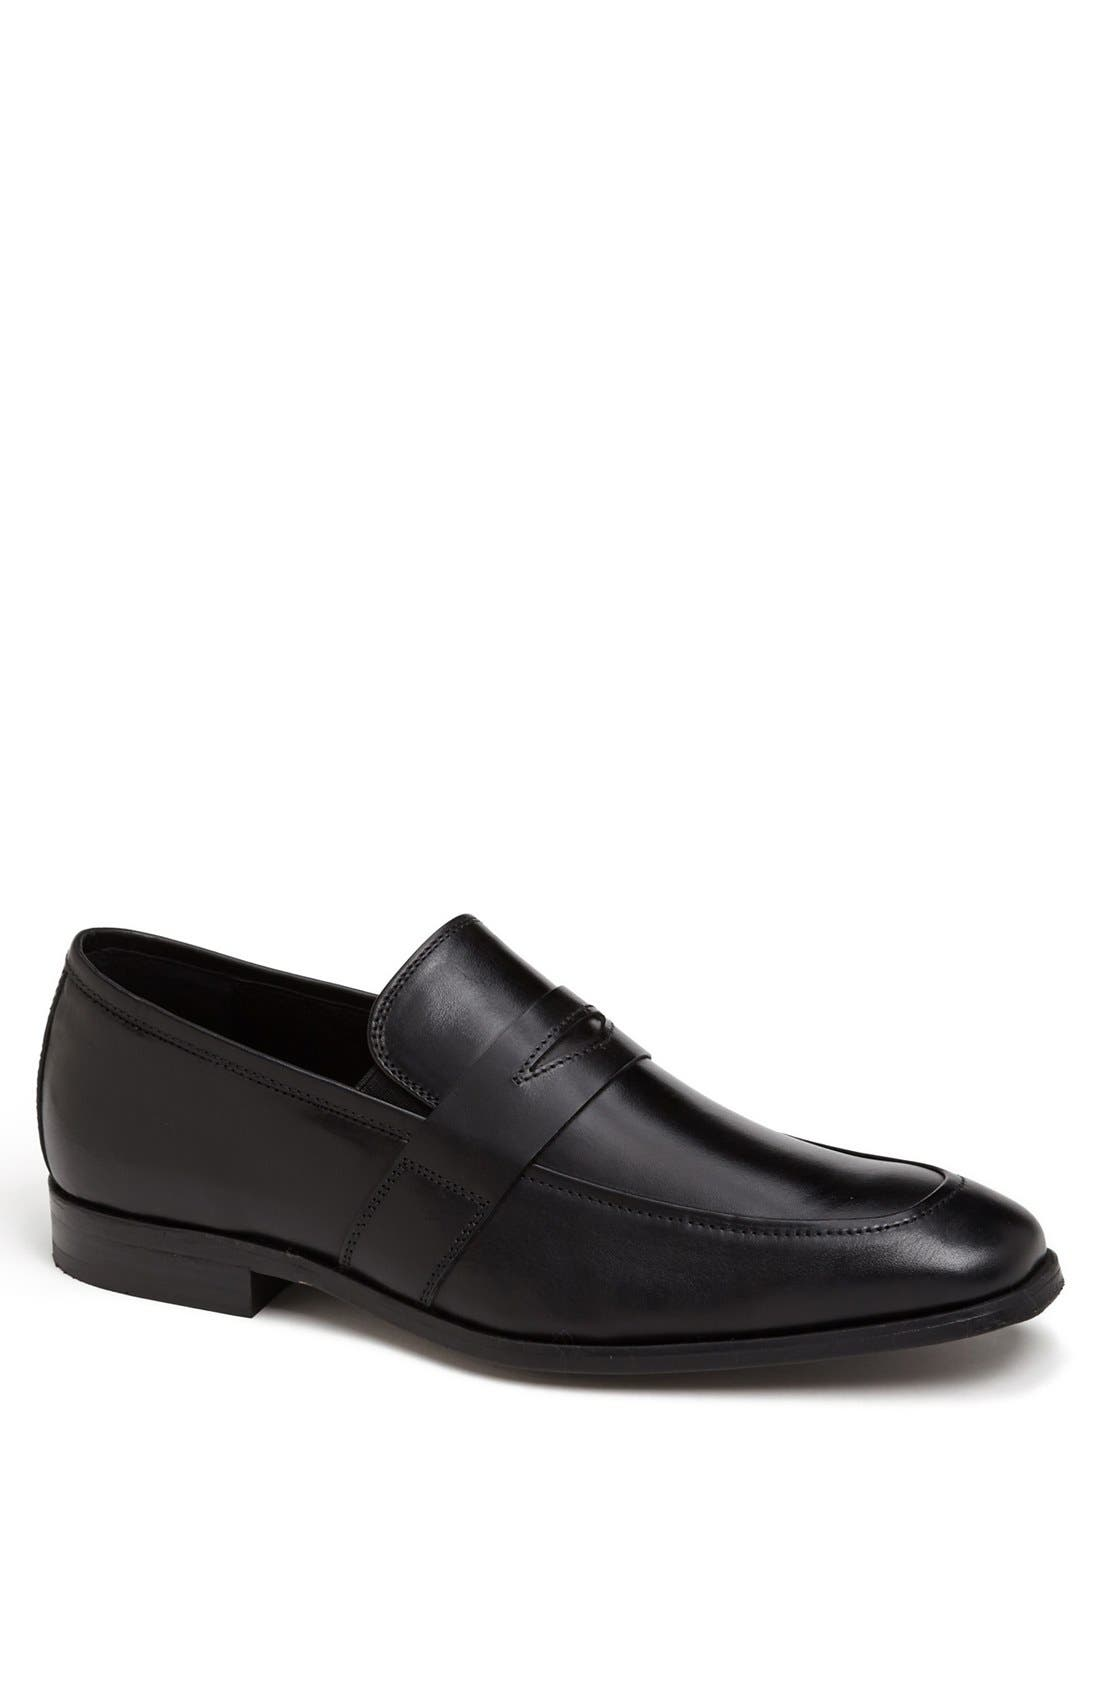 'Jet' Penny Loafer,                         Main,                         color, 001